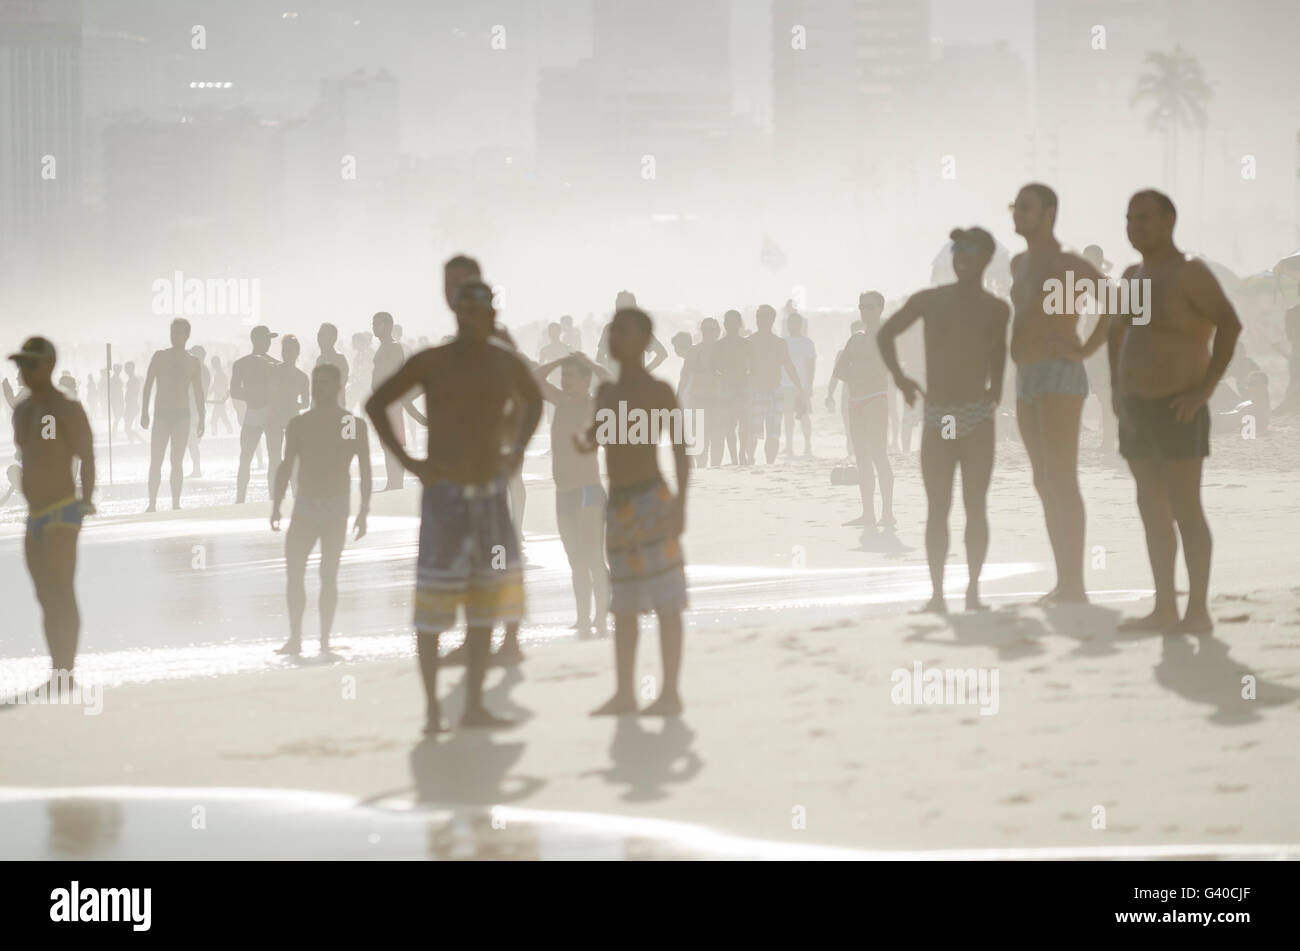 RIO DE JANEIRO - JANUARY 20, 2014: Silhouettes of beachgoers fill the shore of Ipanema at sunset on a summer afternoon. - Stock Image